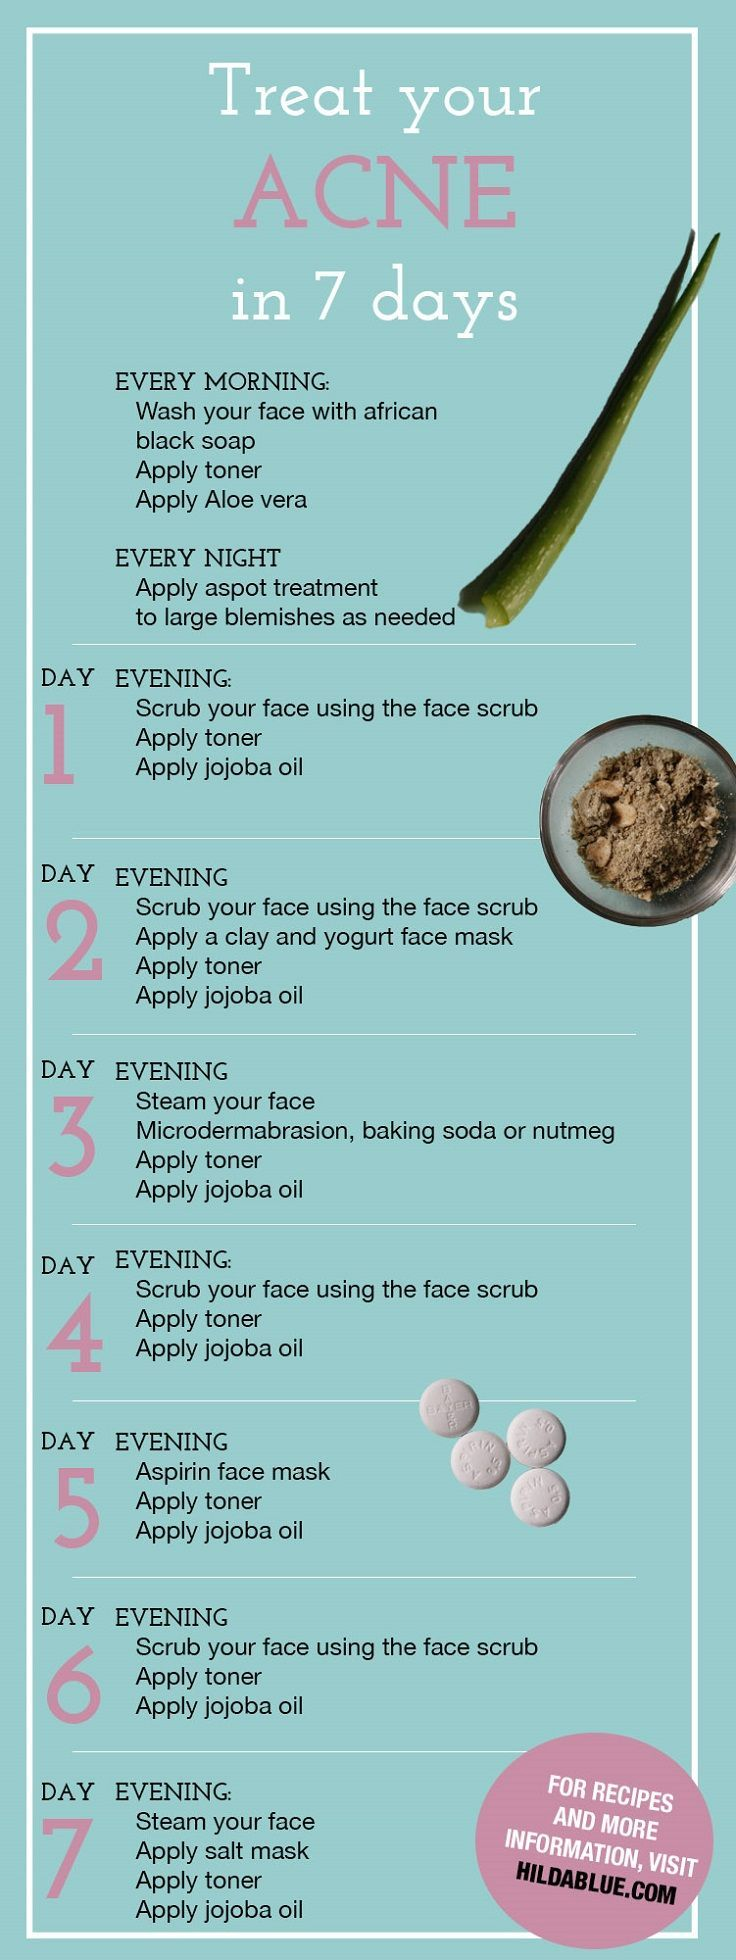 Get Rid of Acne with This One Week Face Treatments - 10 Tips, Tricks and DIYs for Gorgeous Looking Summer Skin